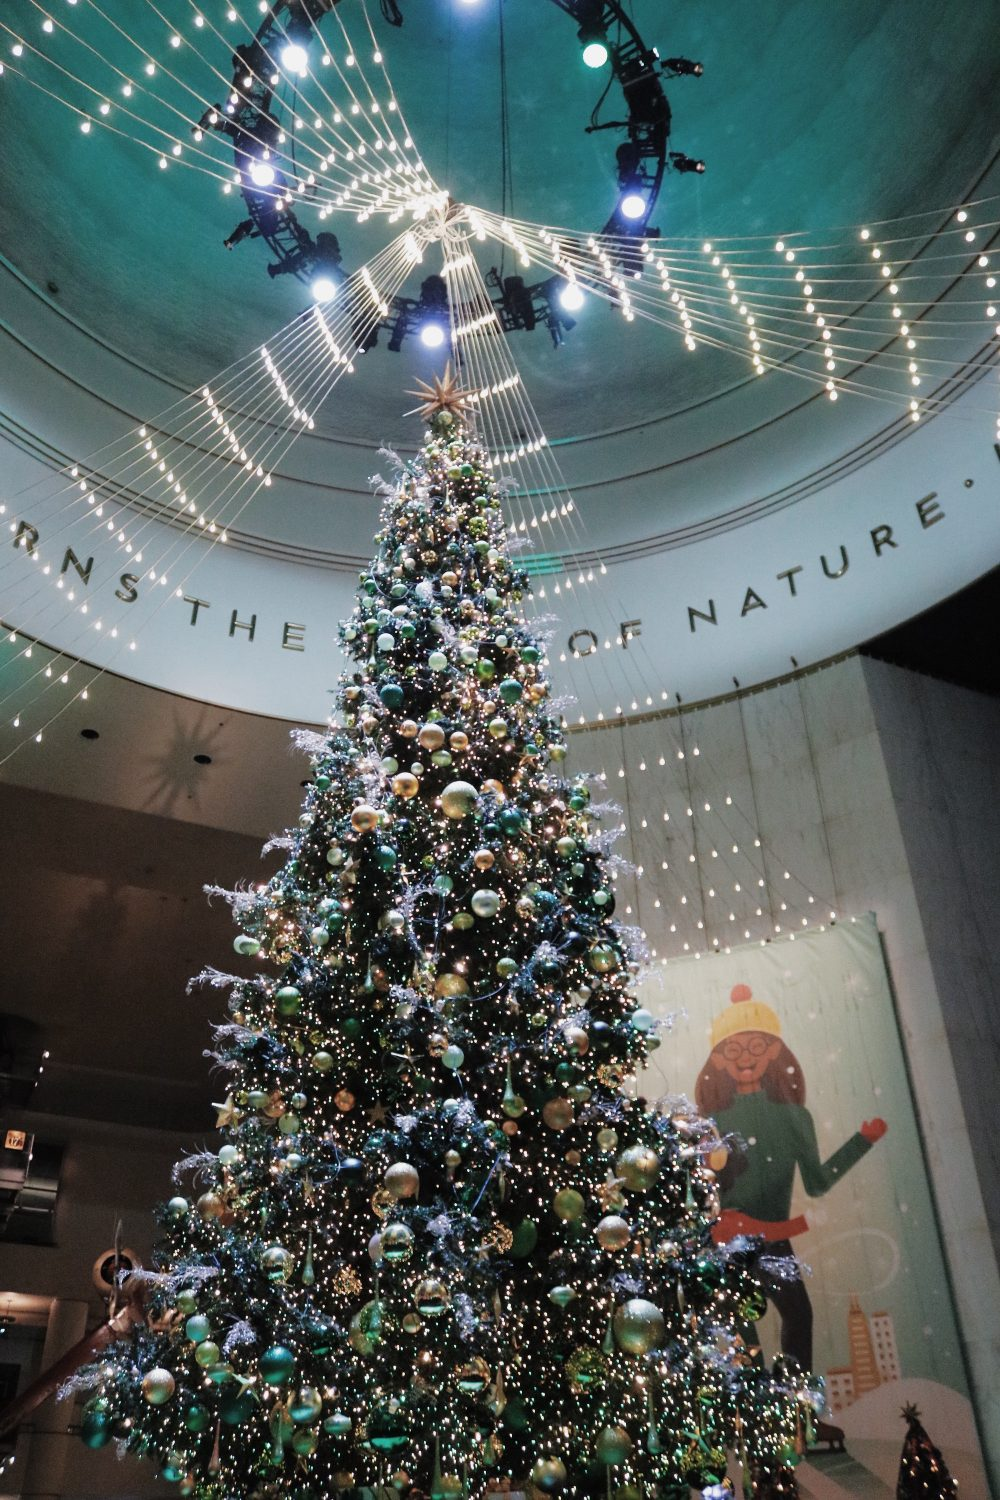 Christmas Around the World at the Museum of Science and Industry